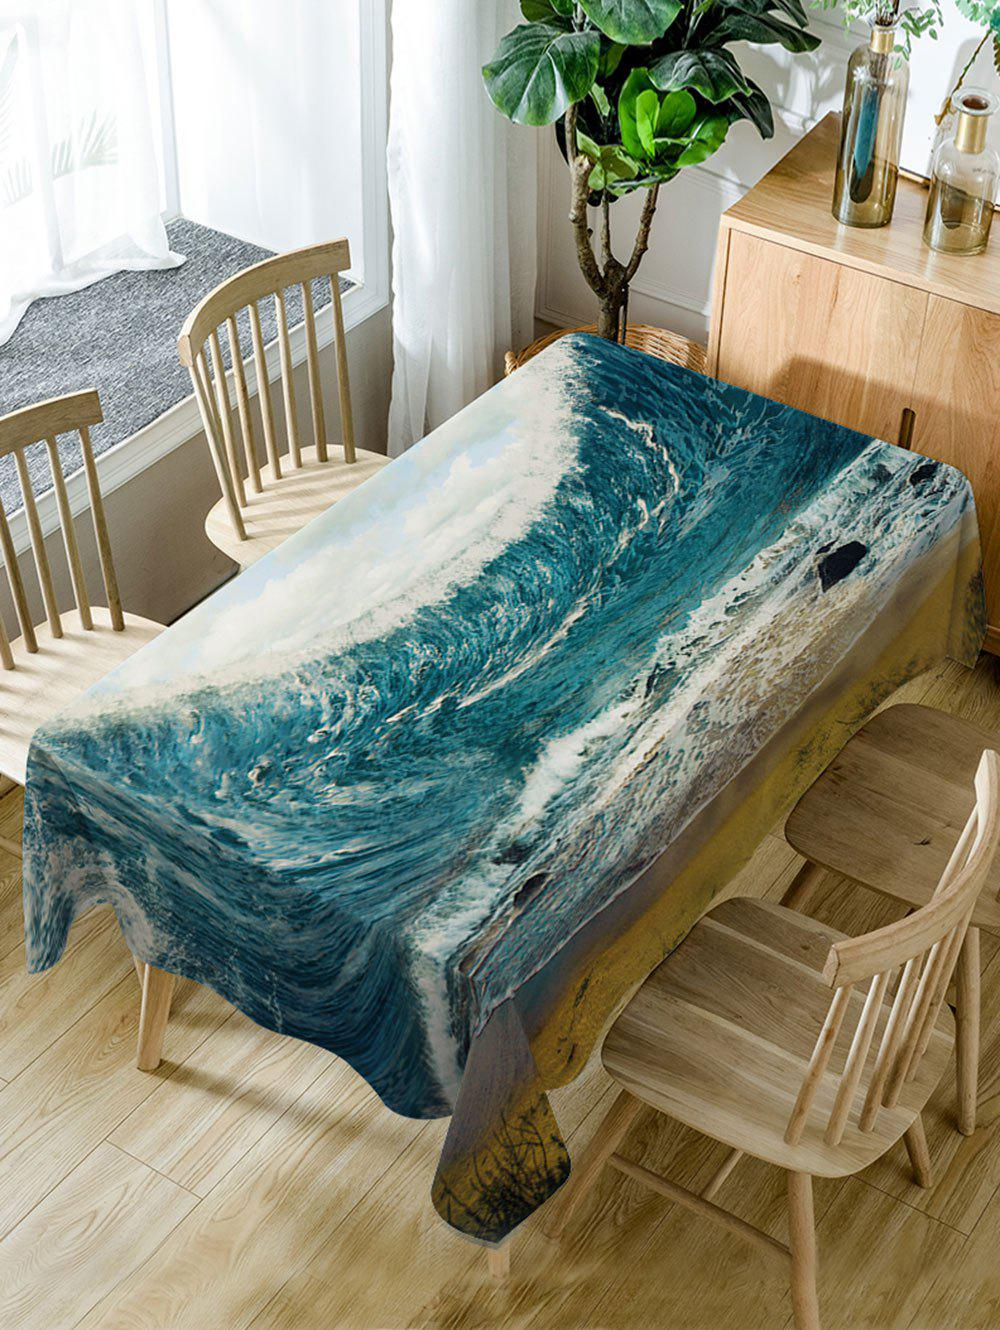 New Ocean Wave Pattern Waterproof Dining Table Cloth